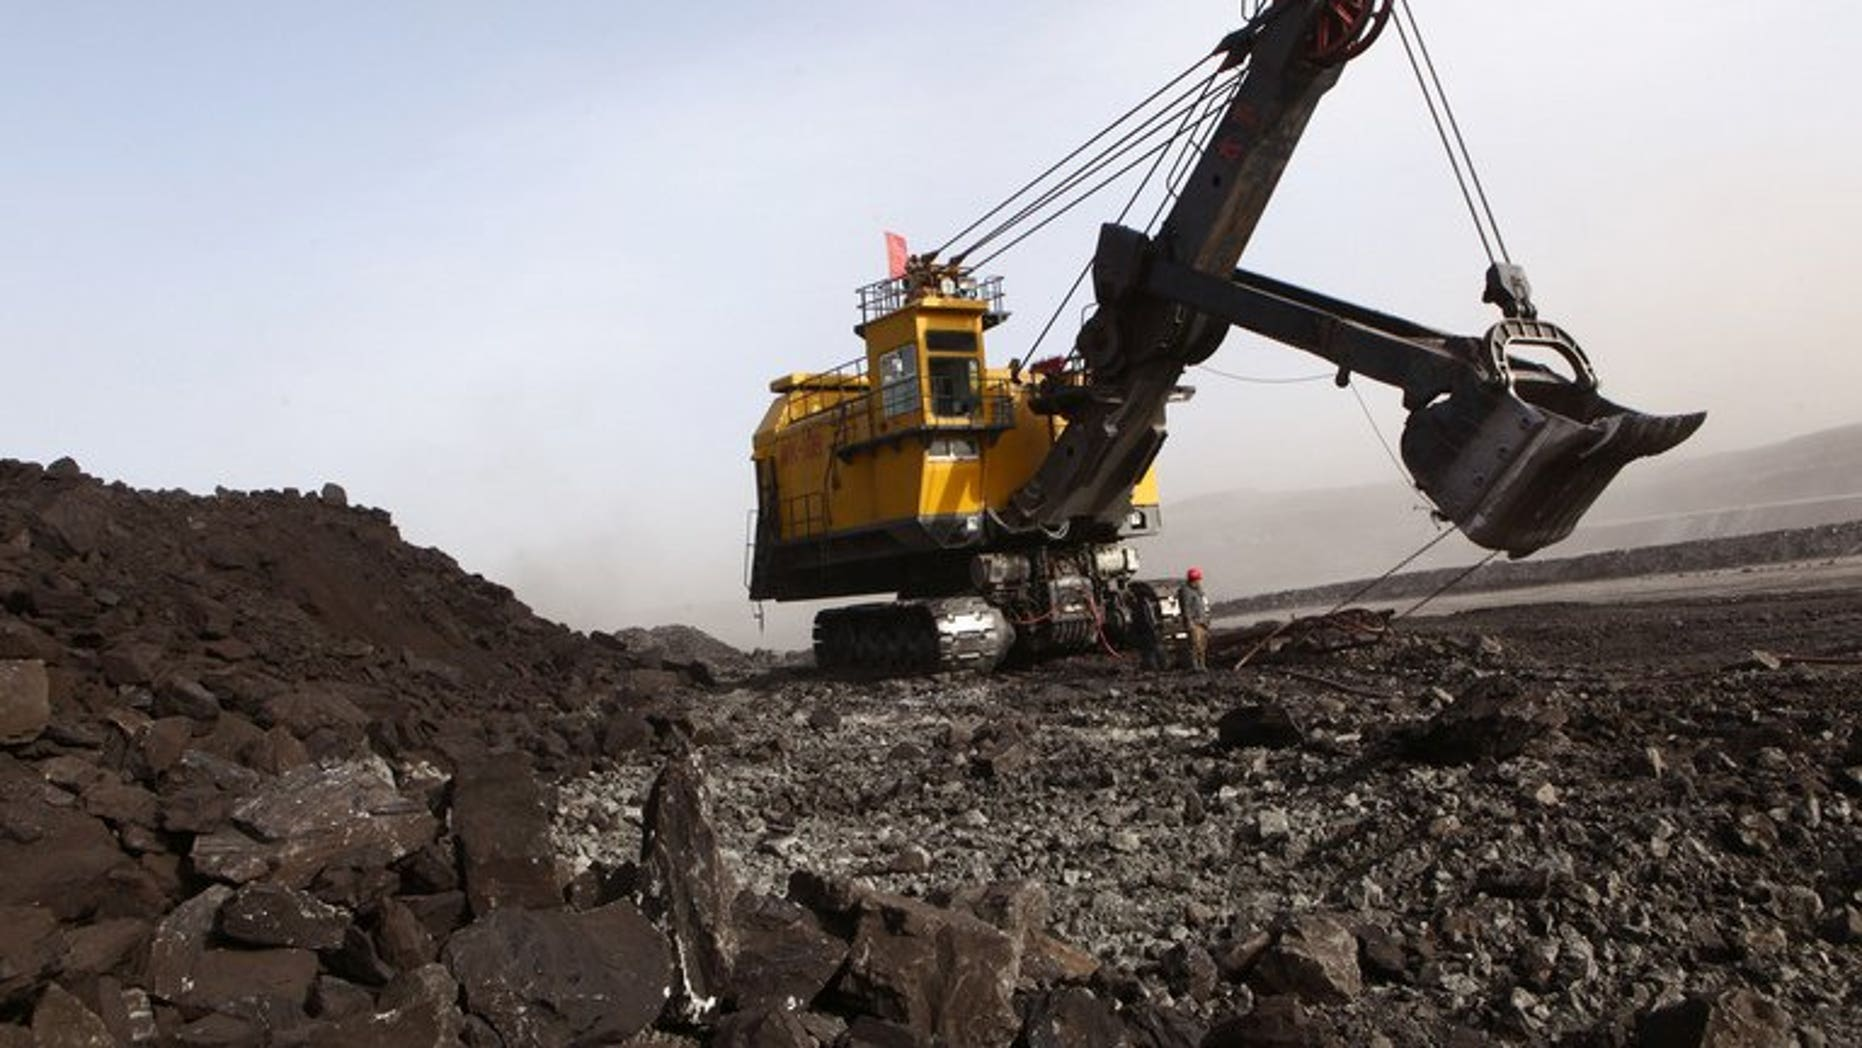 """This file photo shows a coal mine in Huo Lin Guo Le, China's north Inner Mongolia region, on November 15, 2010. A major state-owned coal producer has caused """"drastic drops"""" in groundwater near one of its projects in the region, the environmental group Greenpeace said in a report."""